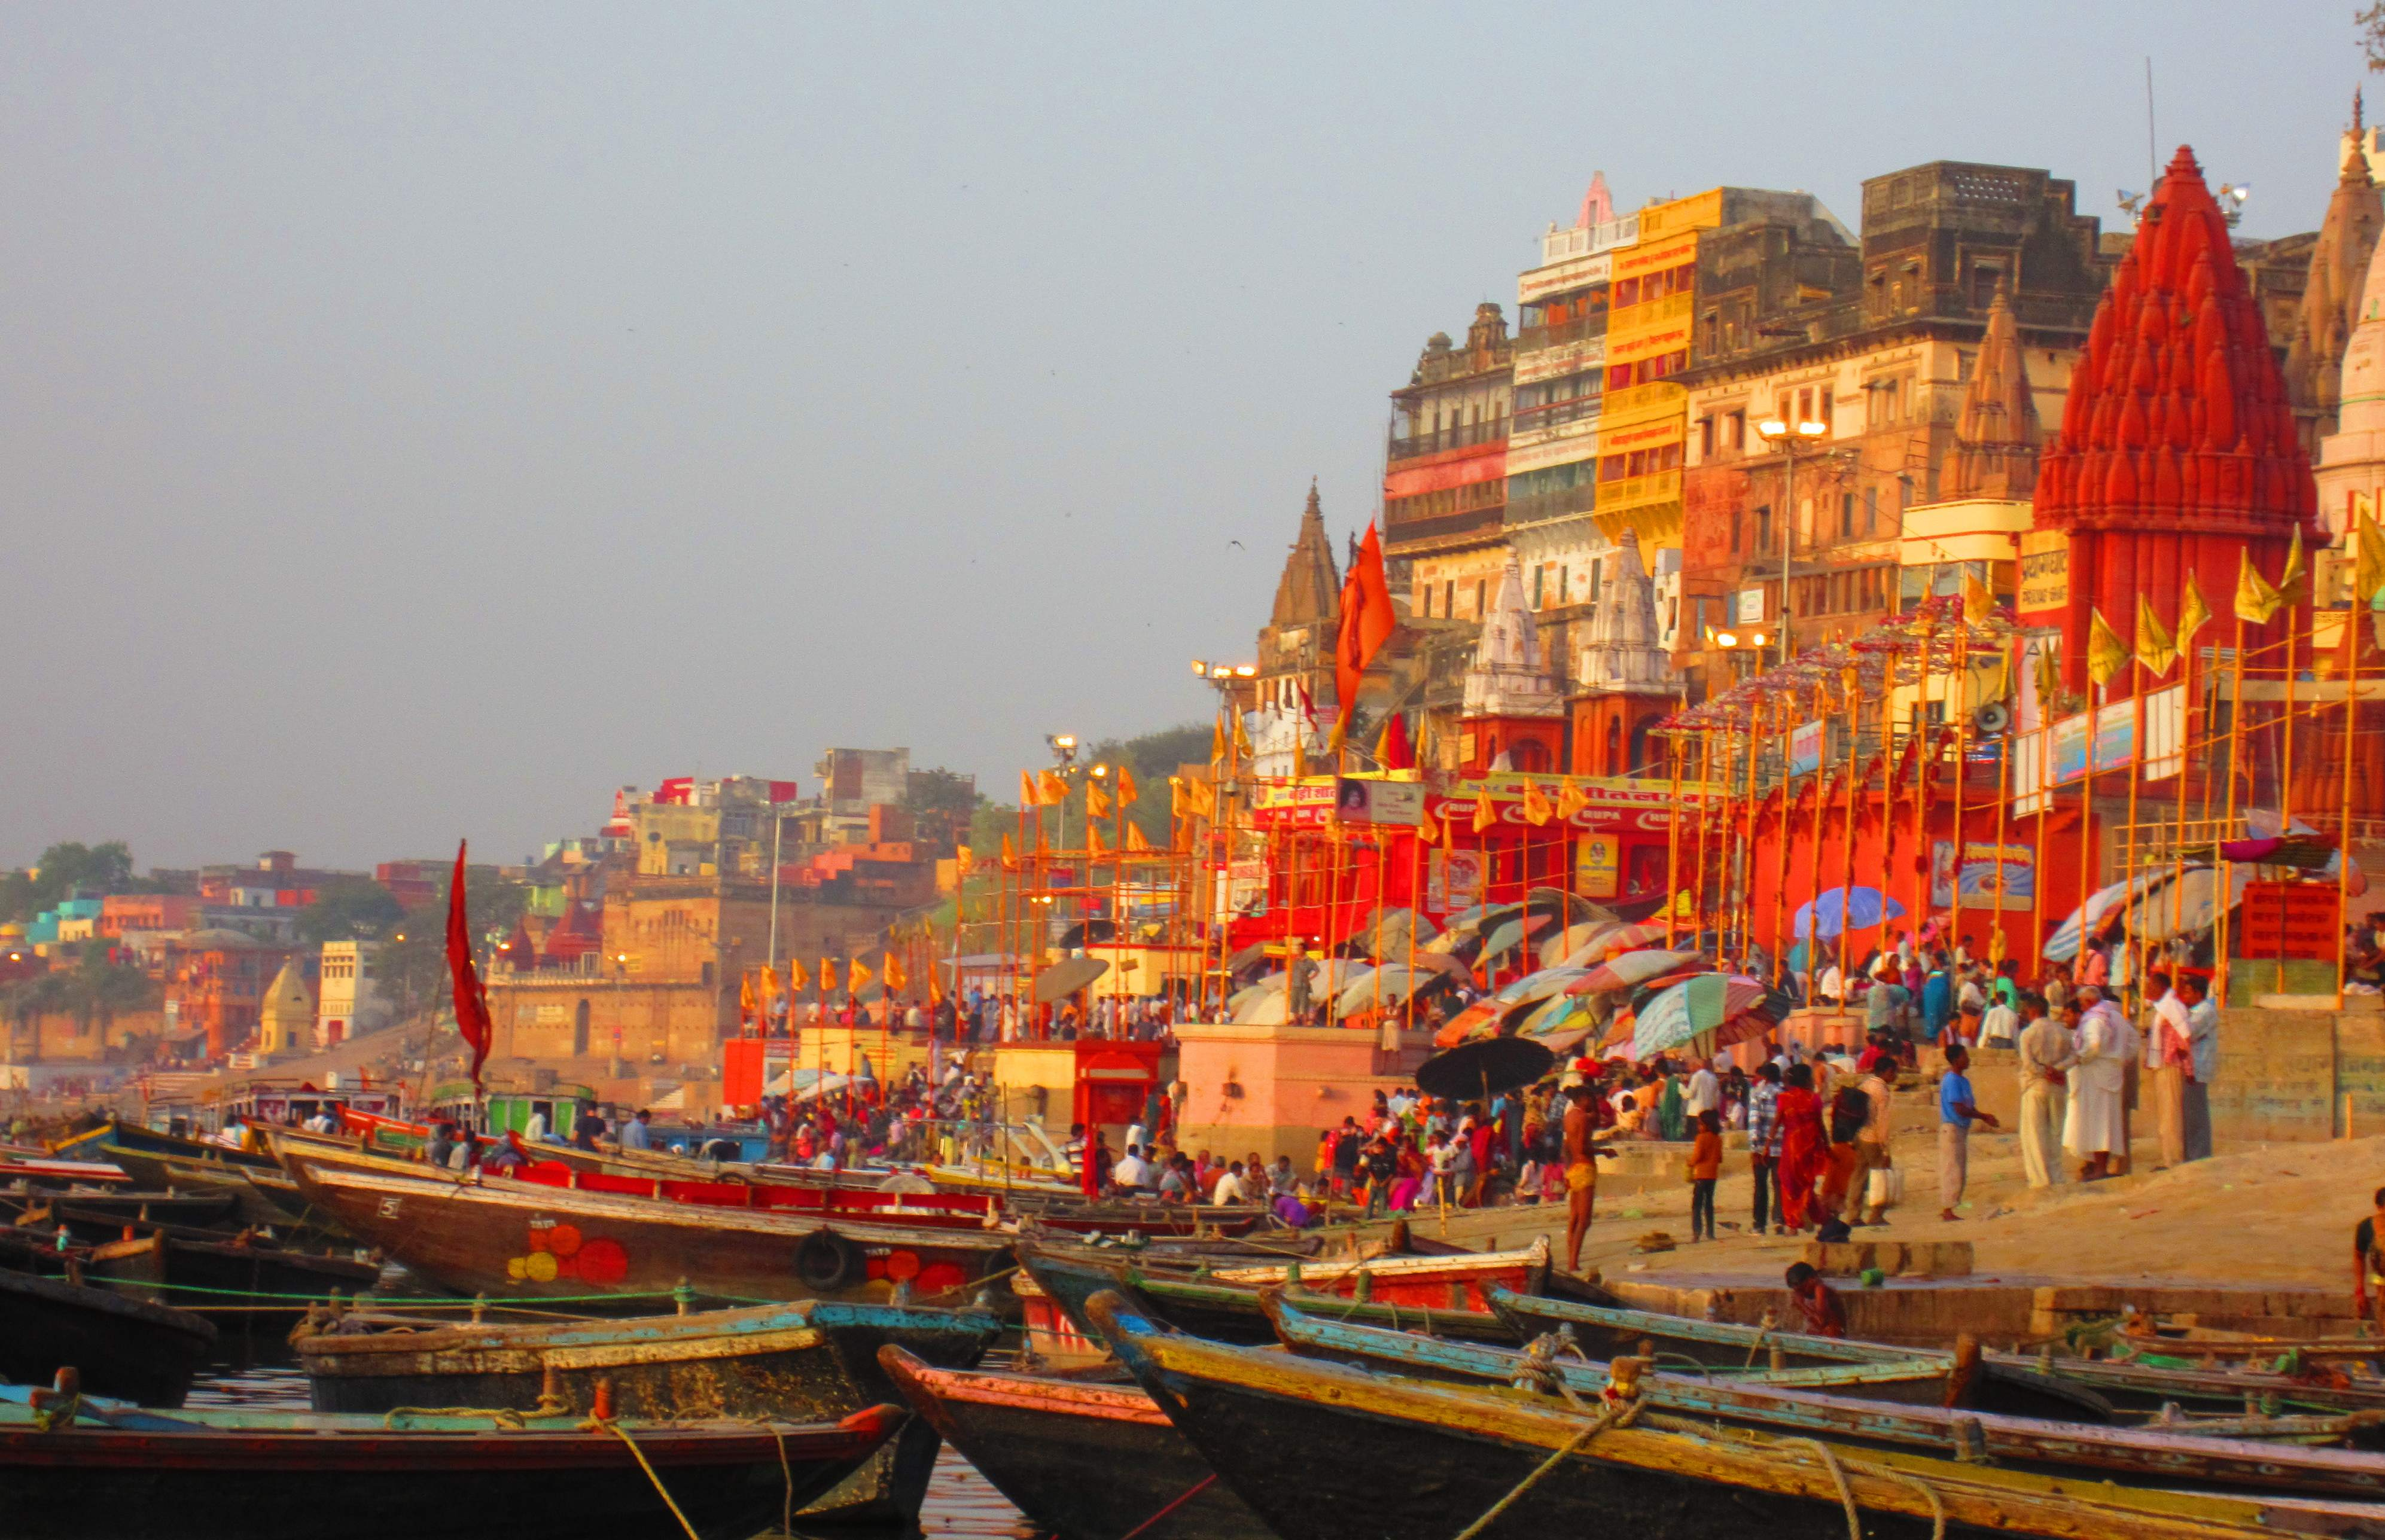 Classic North India - Ganga, Varanasi, India